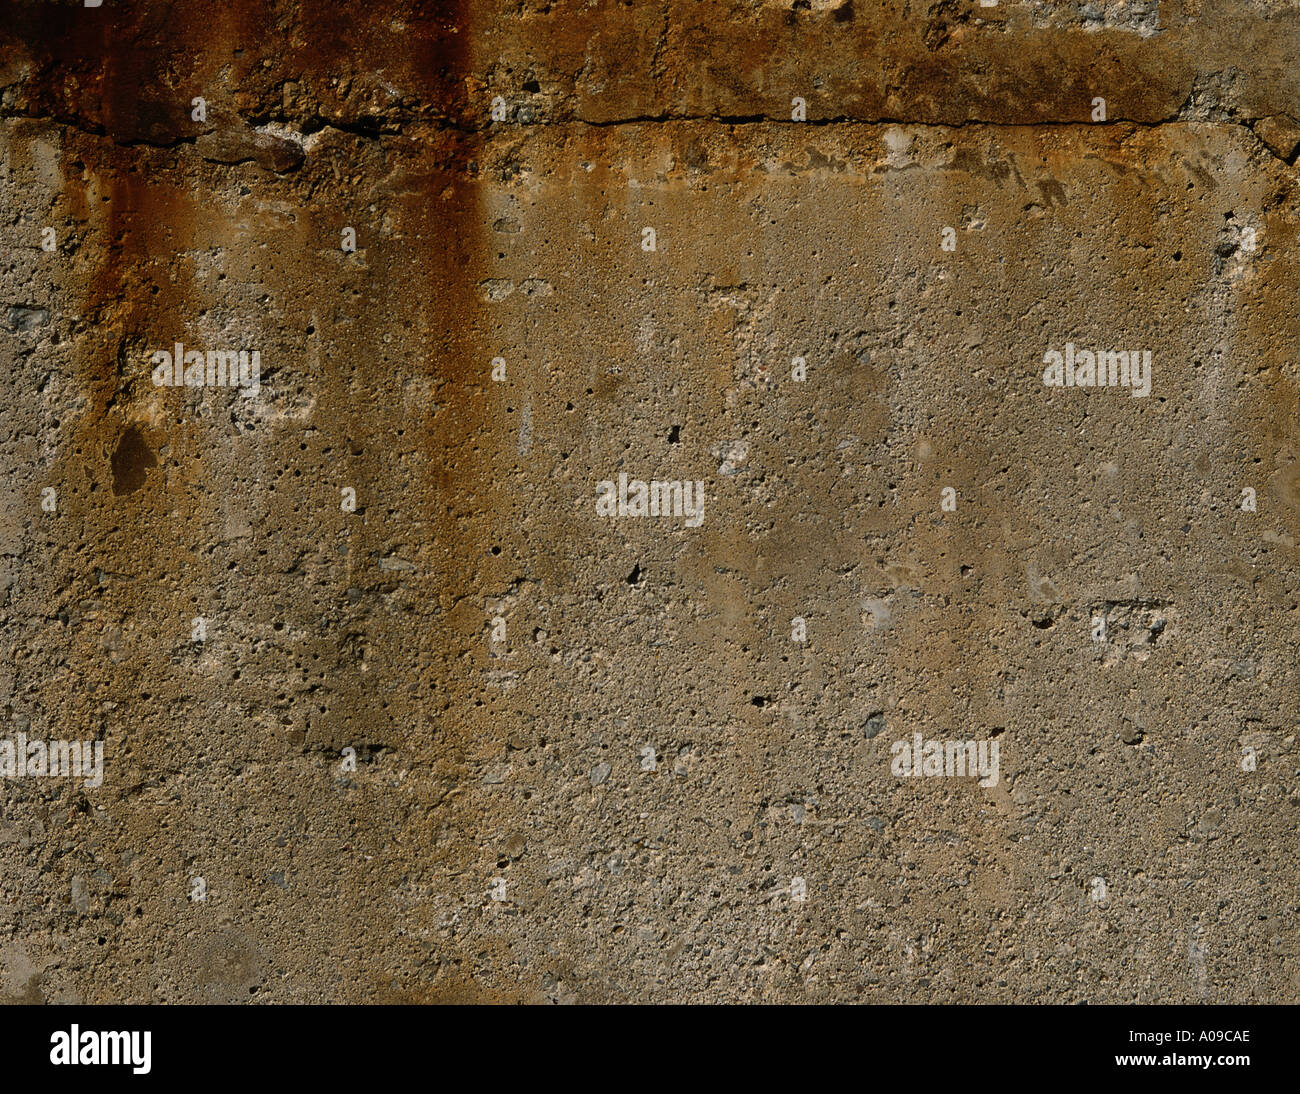 Rust Cement Wall : A close up of an aged and weathered cement or concrete